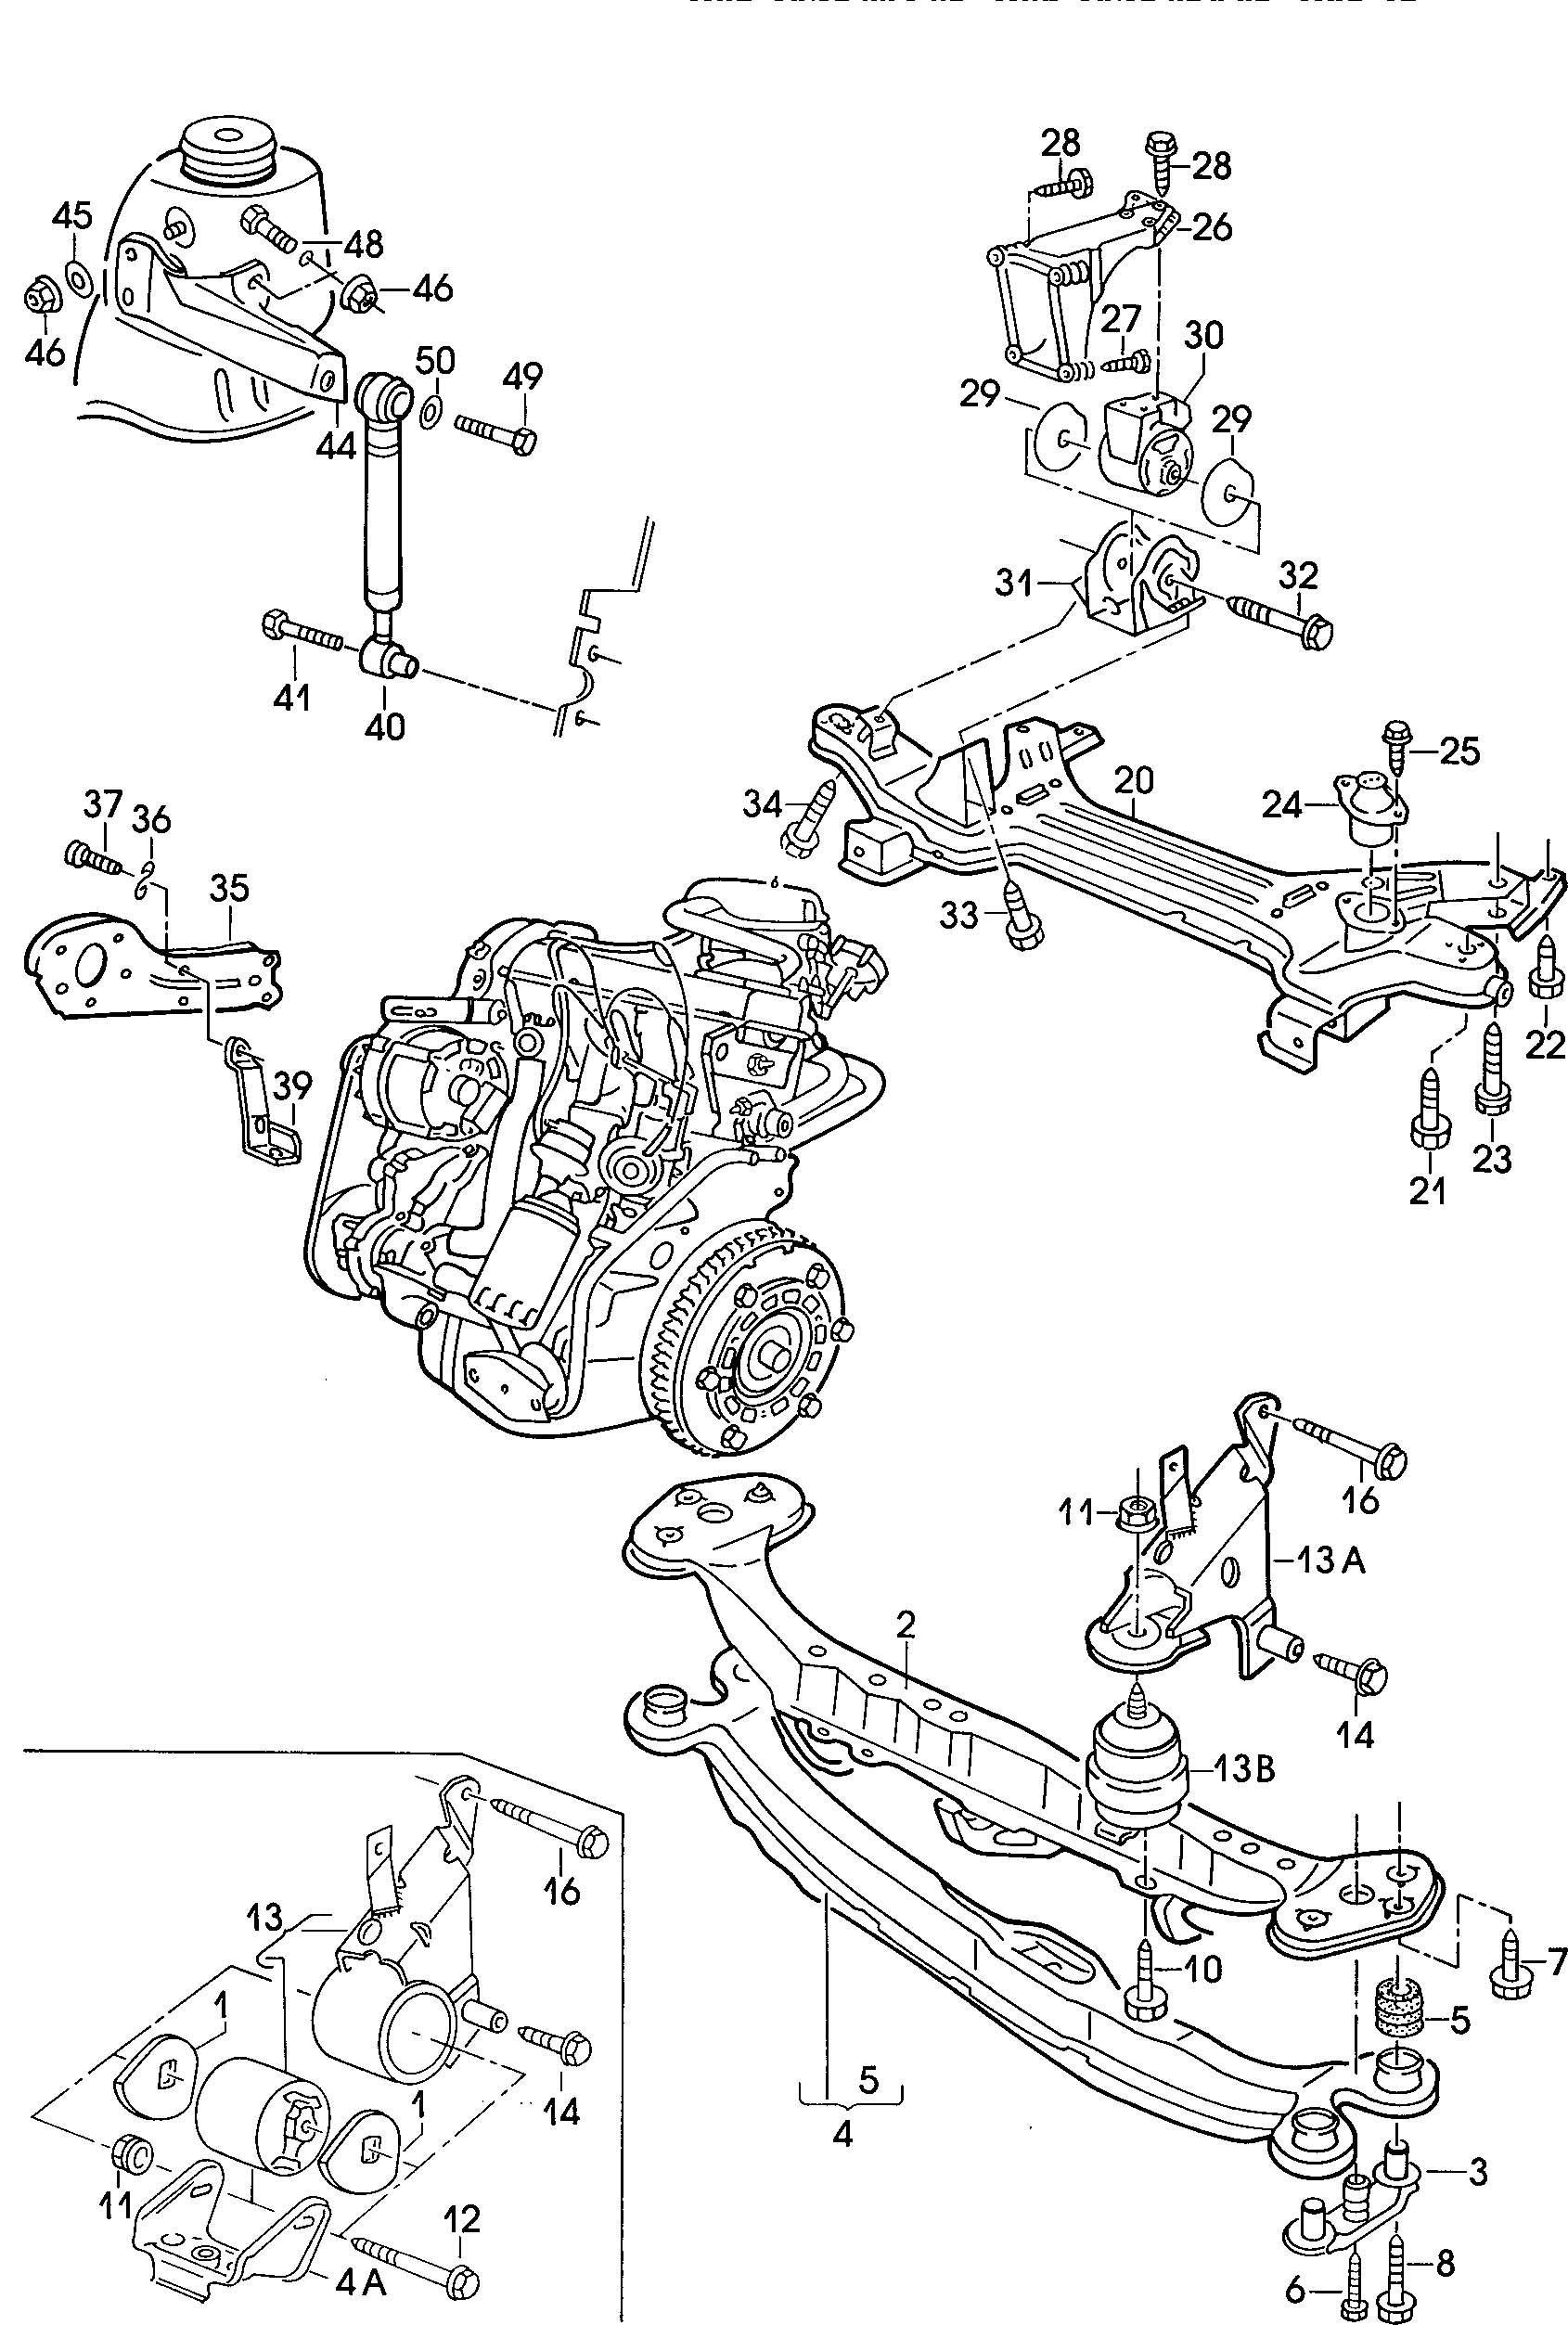 Volkswagen Jetta Bolt Mount Arm Lateral Suspension